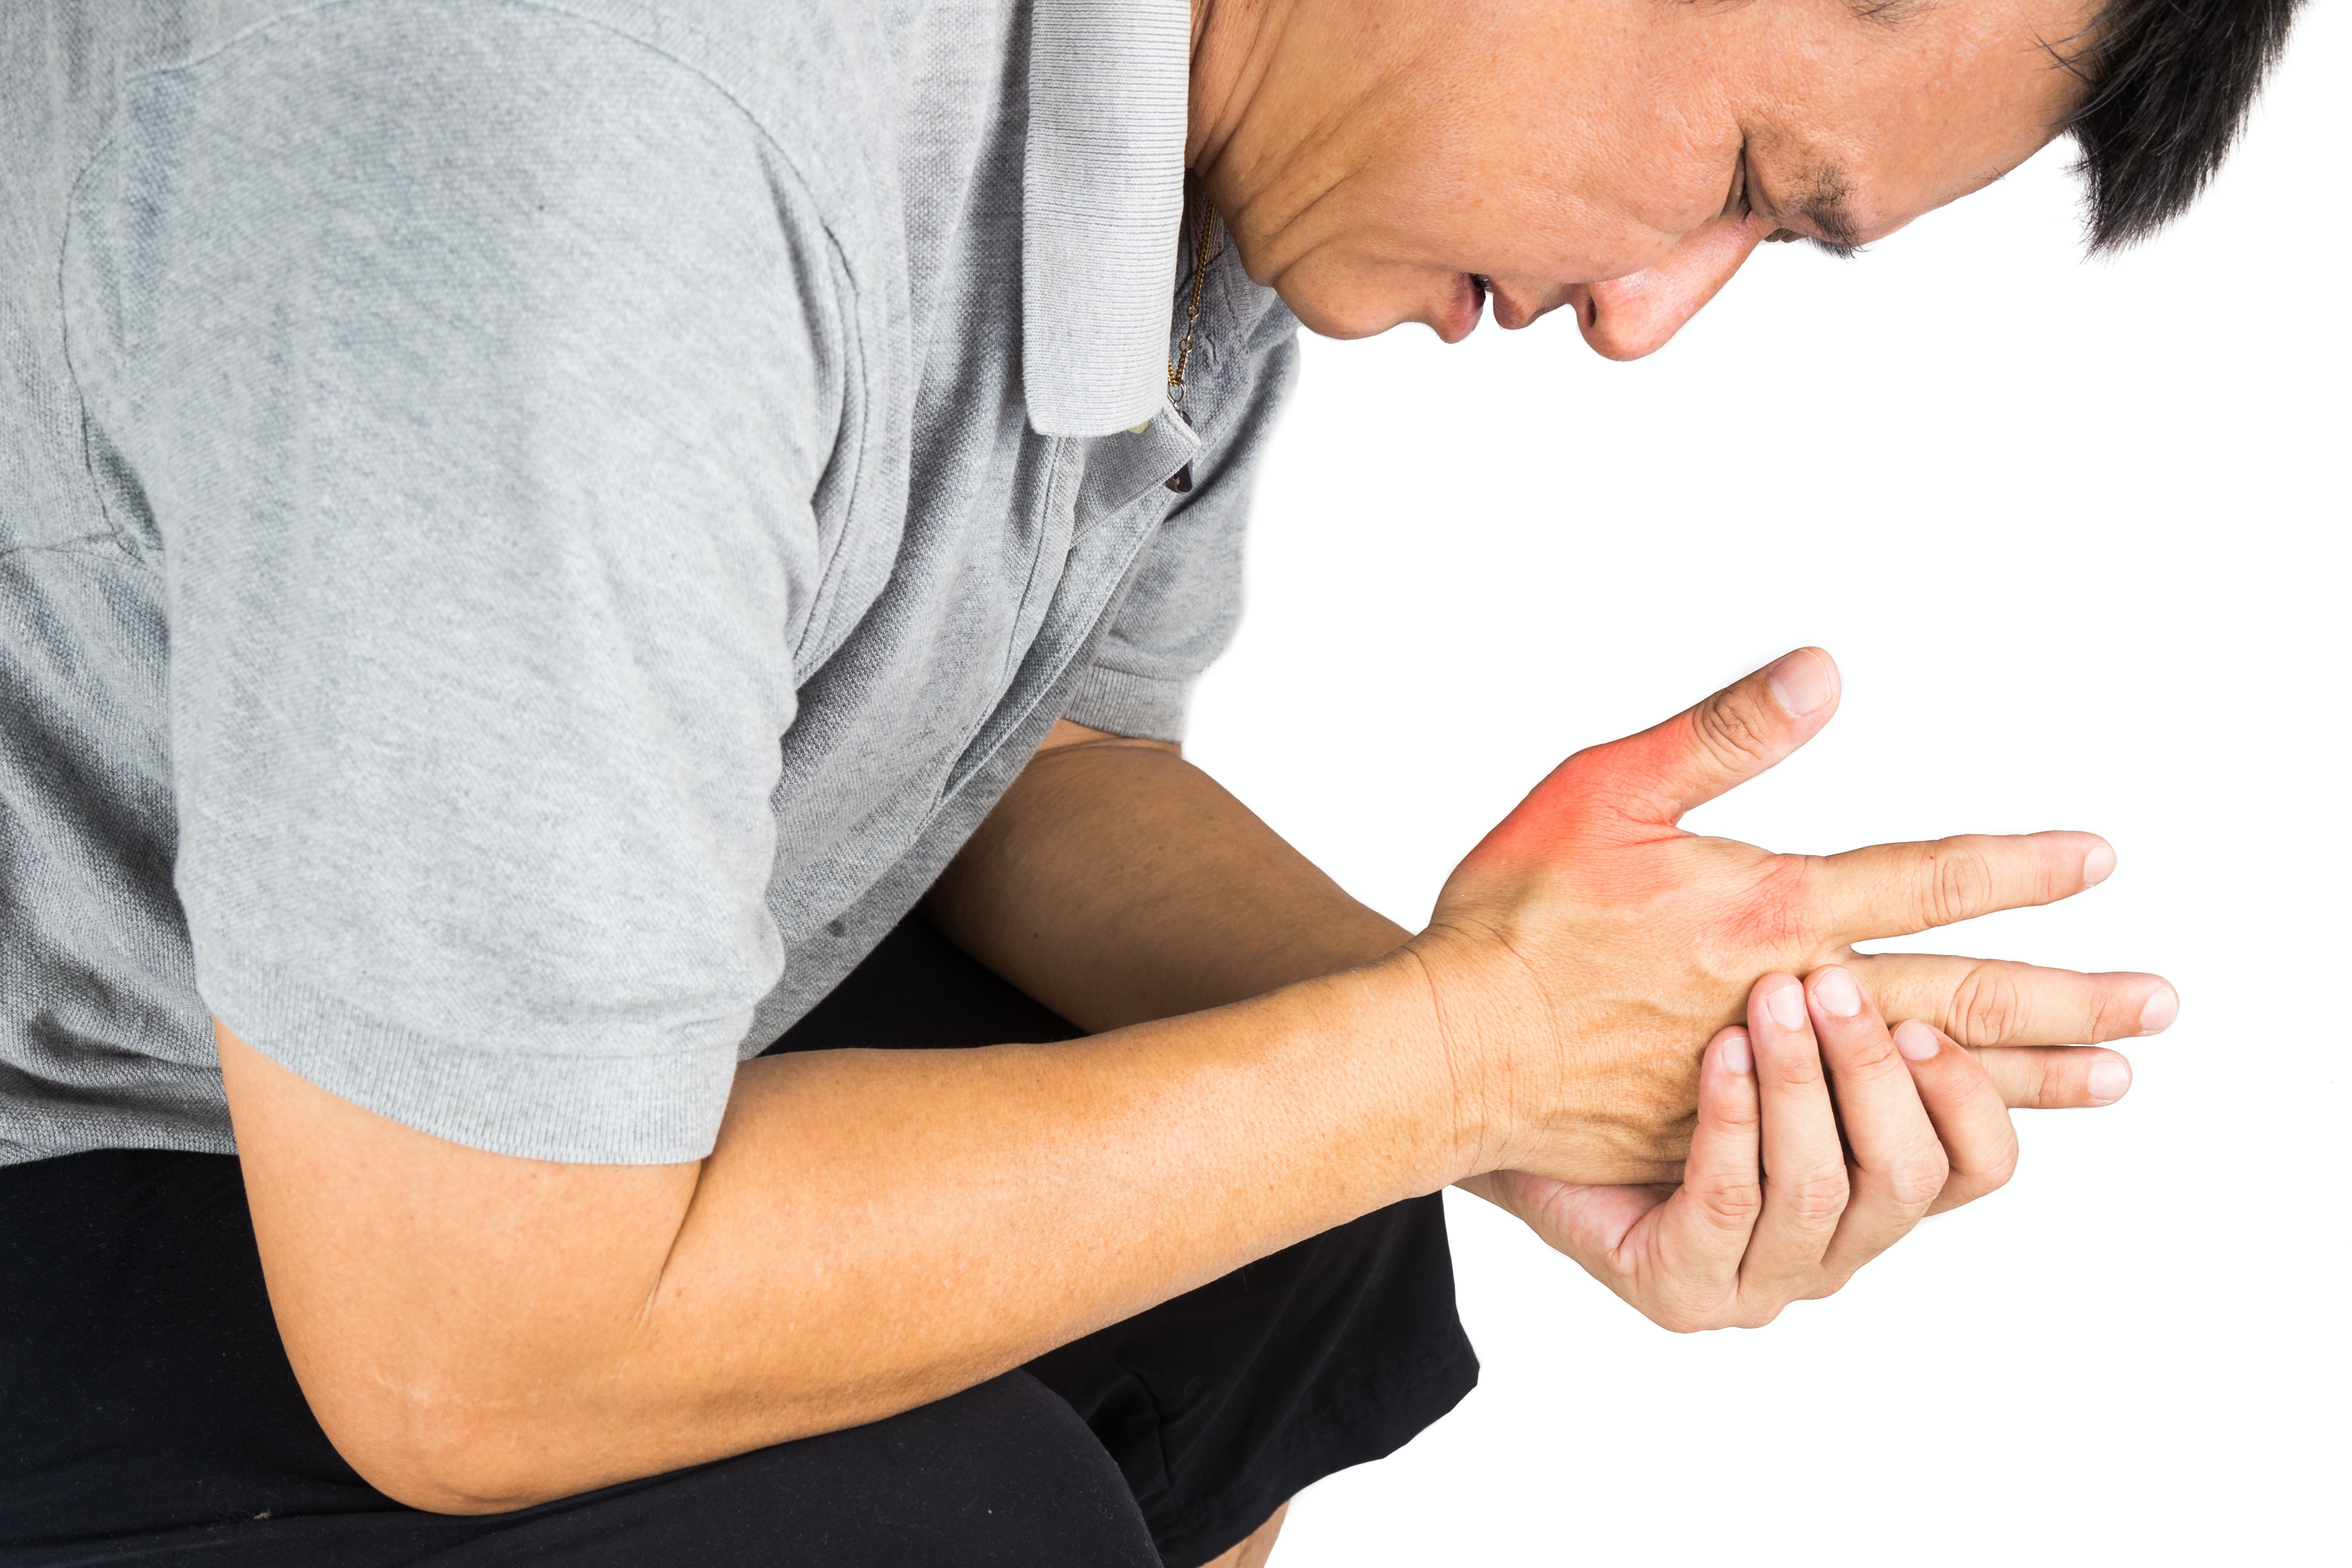 Slylo finger on the hand: causes, treatment and prevention